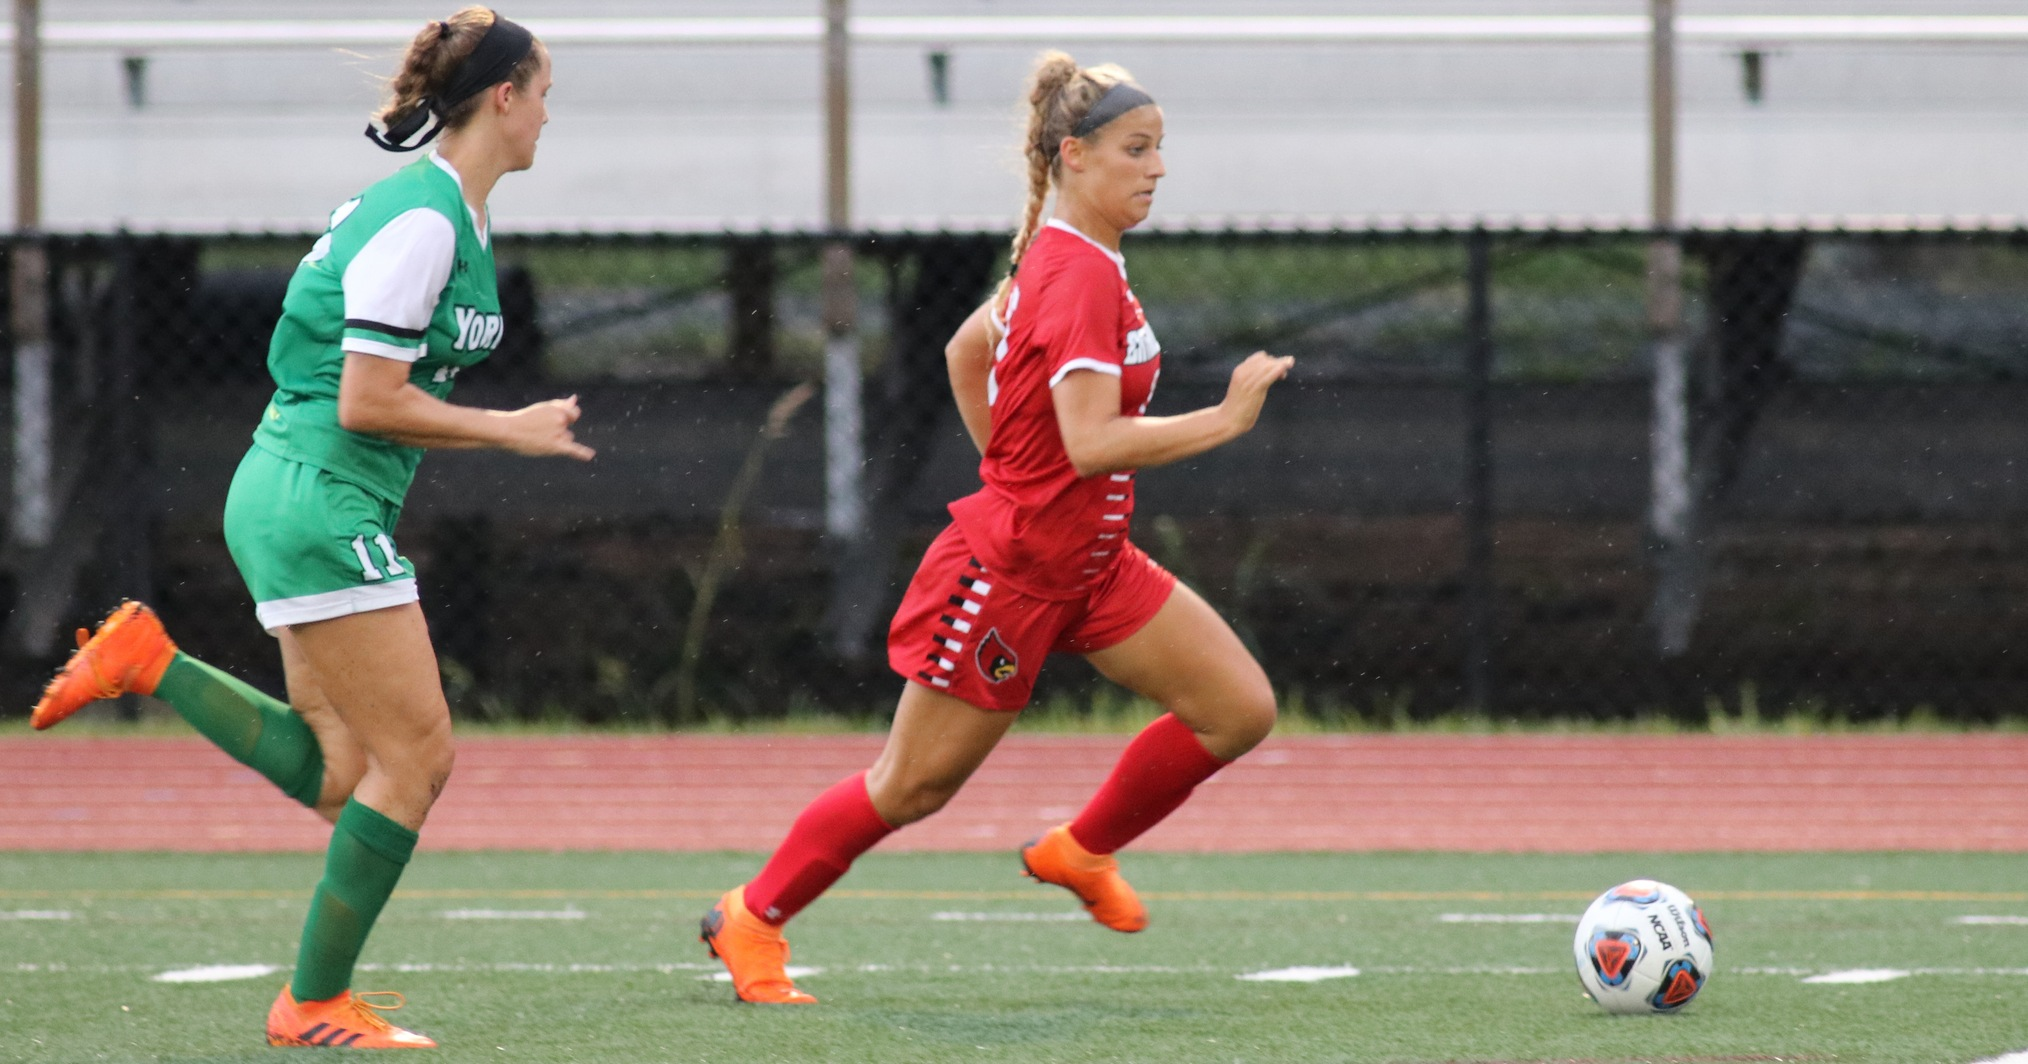 Cardinals' Four Goals Top York in Season Opener